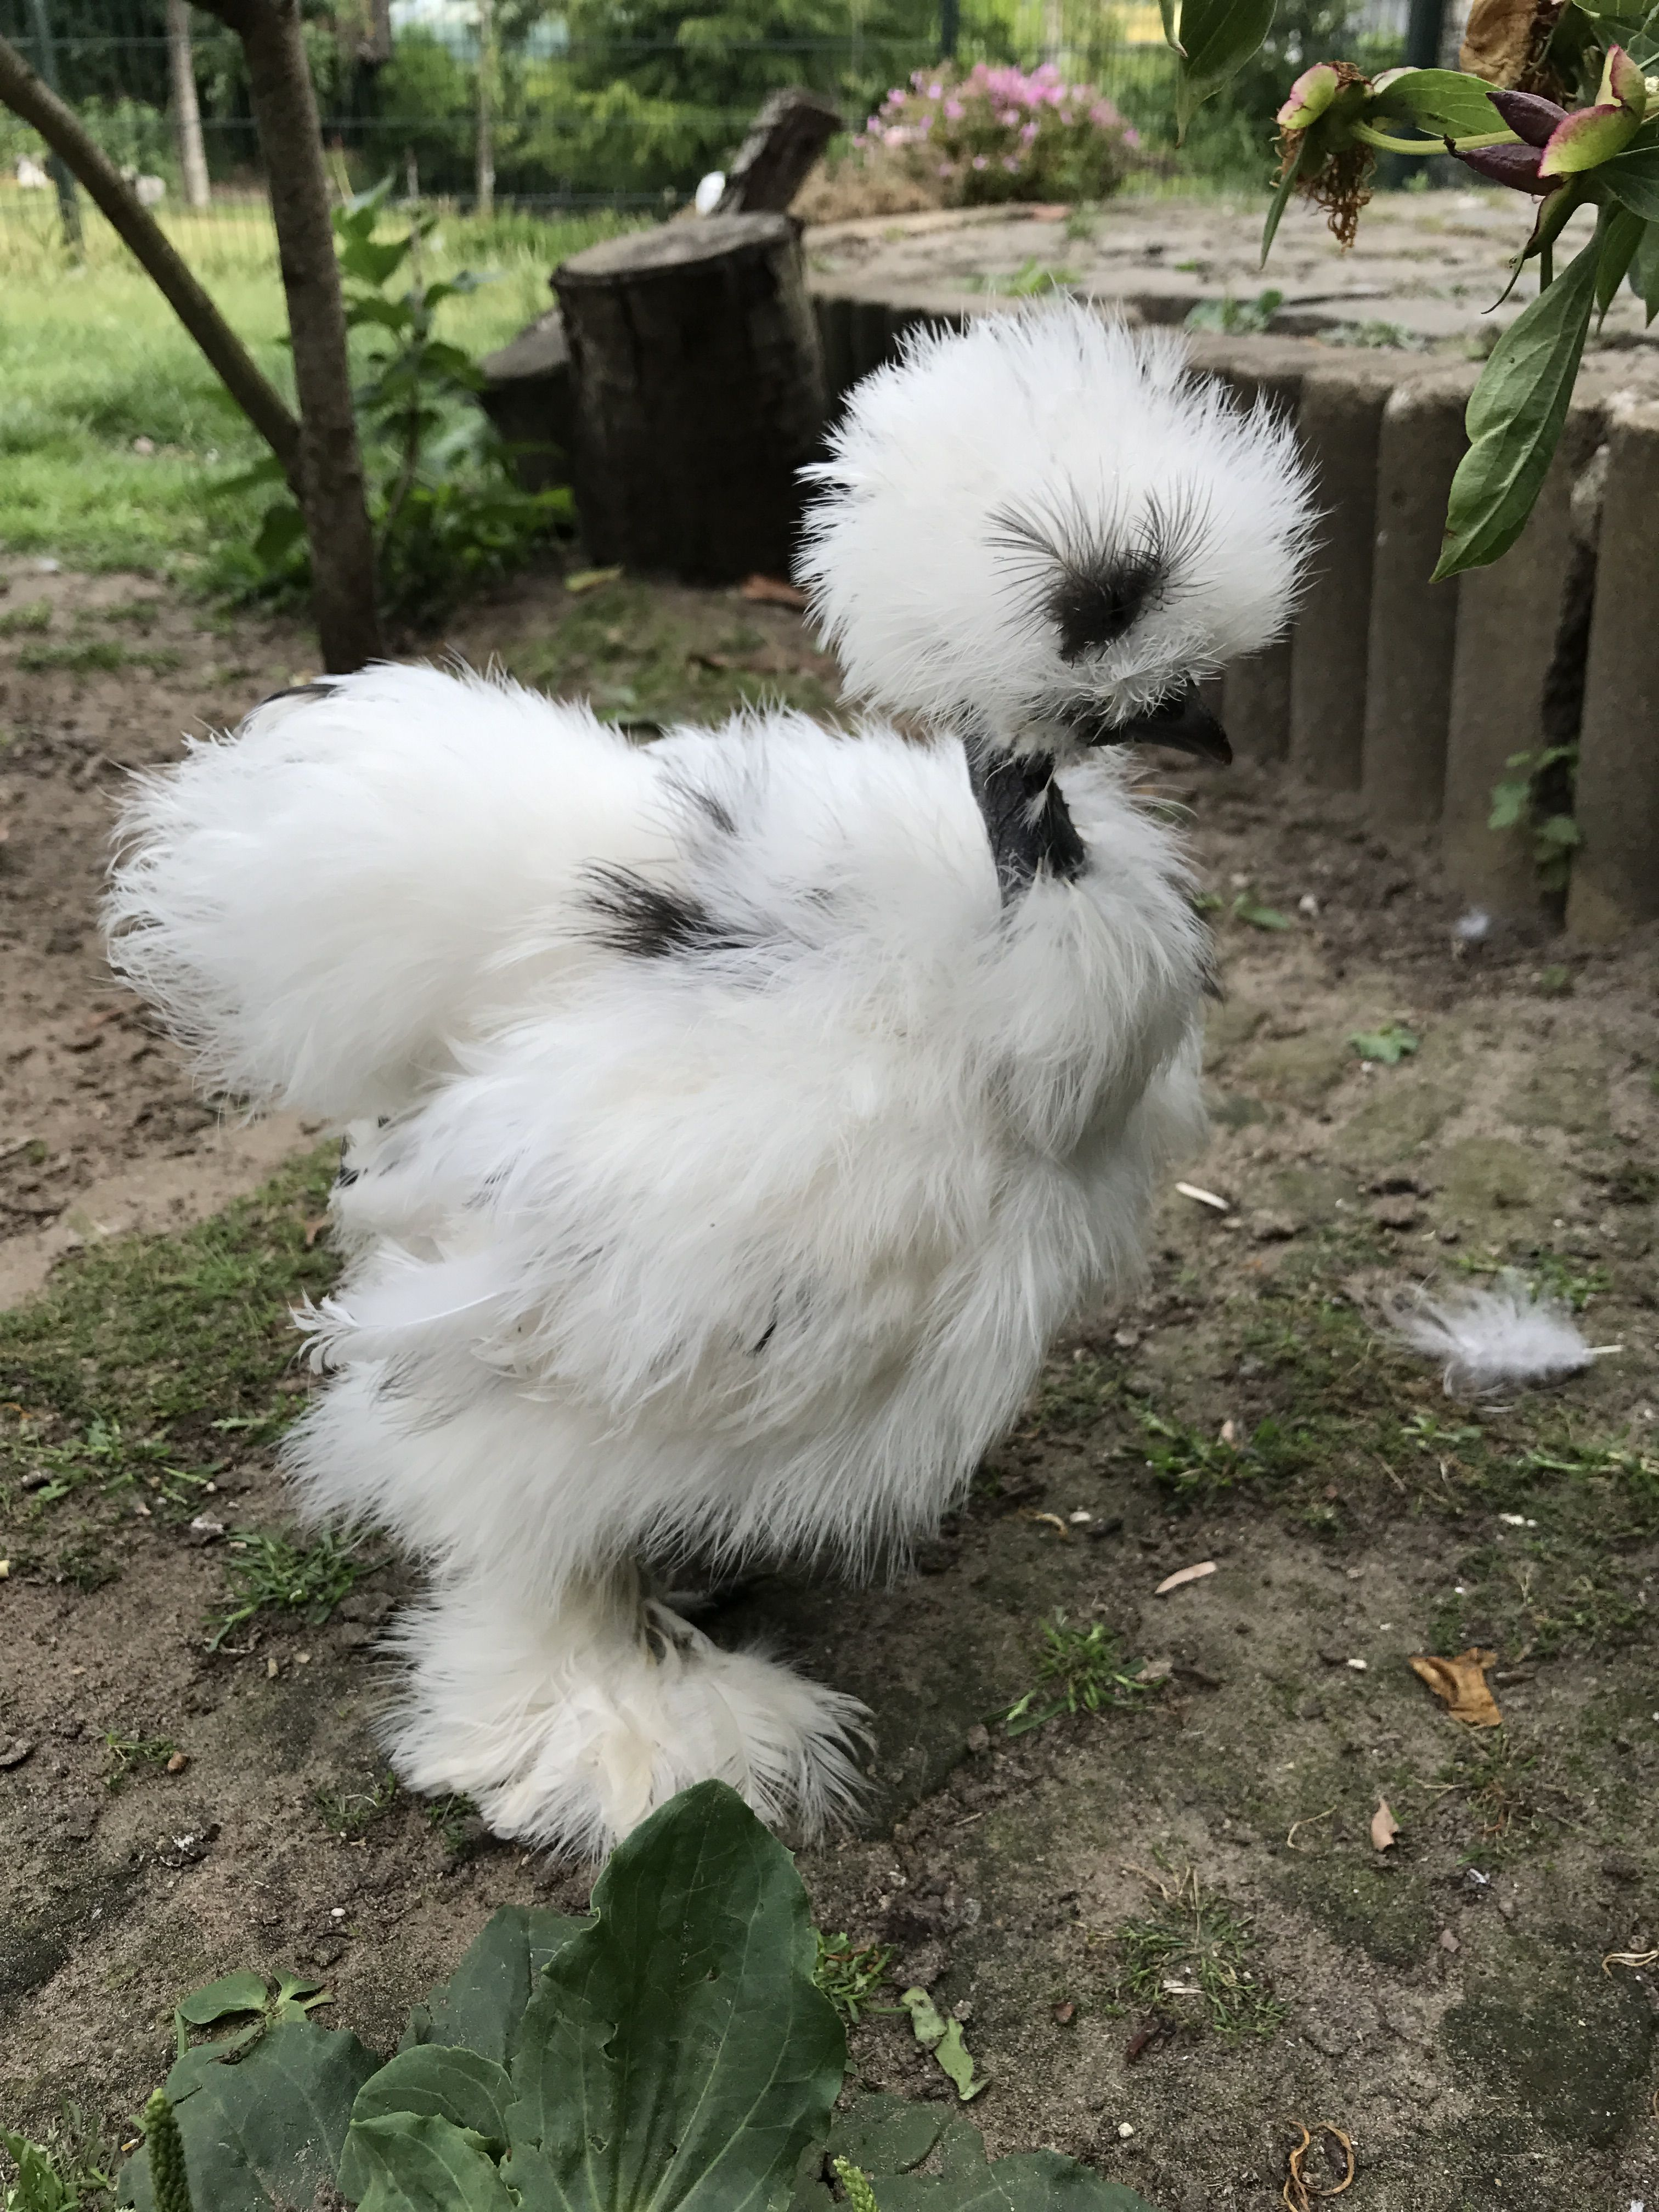 Paint showgirl | Silkie chickens, Funny birds, Cute animals